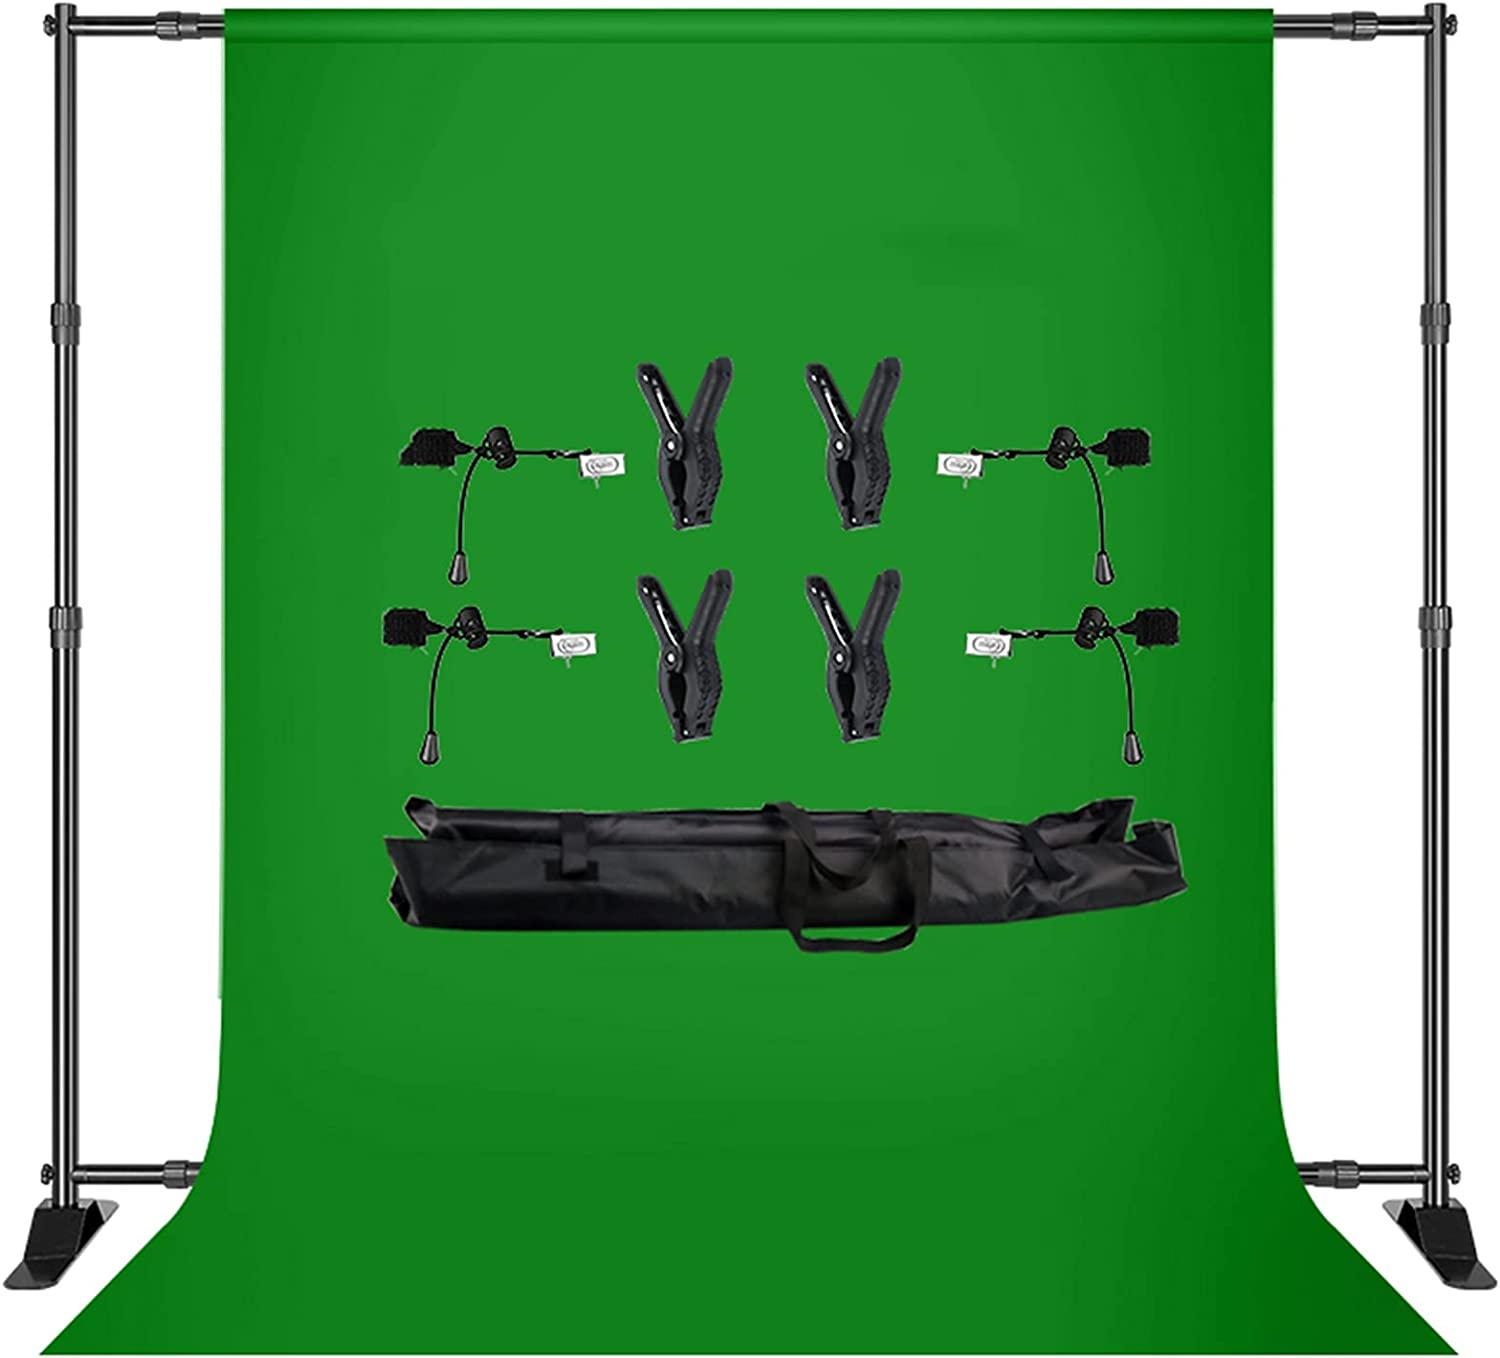 YYFANGYF Tulsa Mall Photo Video Studio Background Kit 2.7x3m Stand New mail order Double-